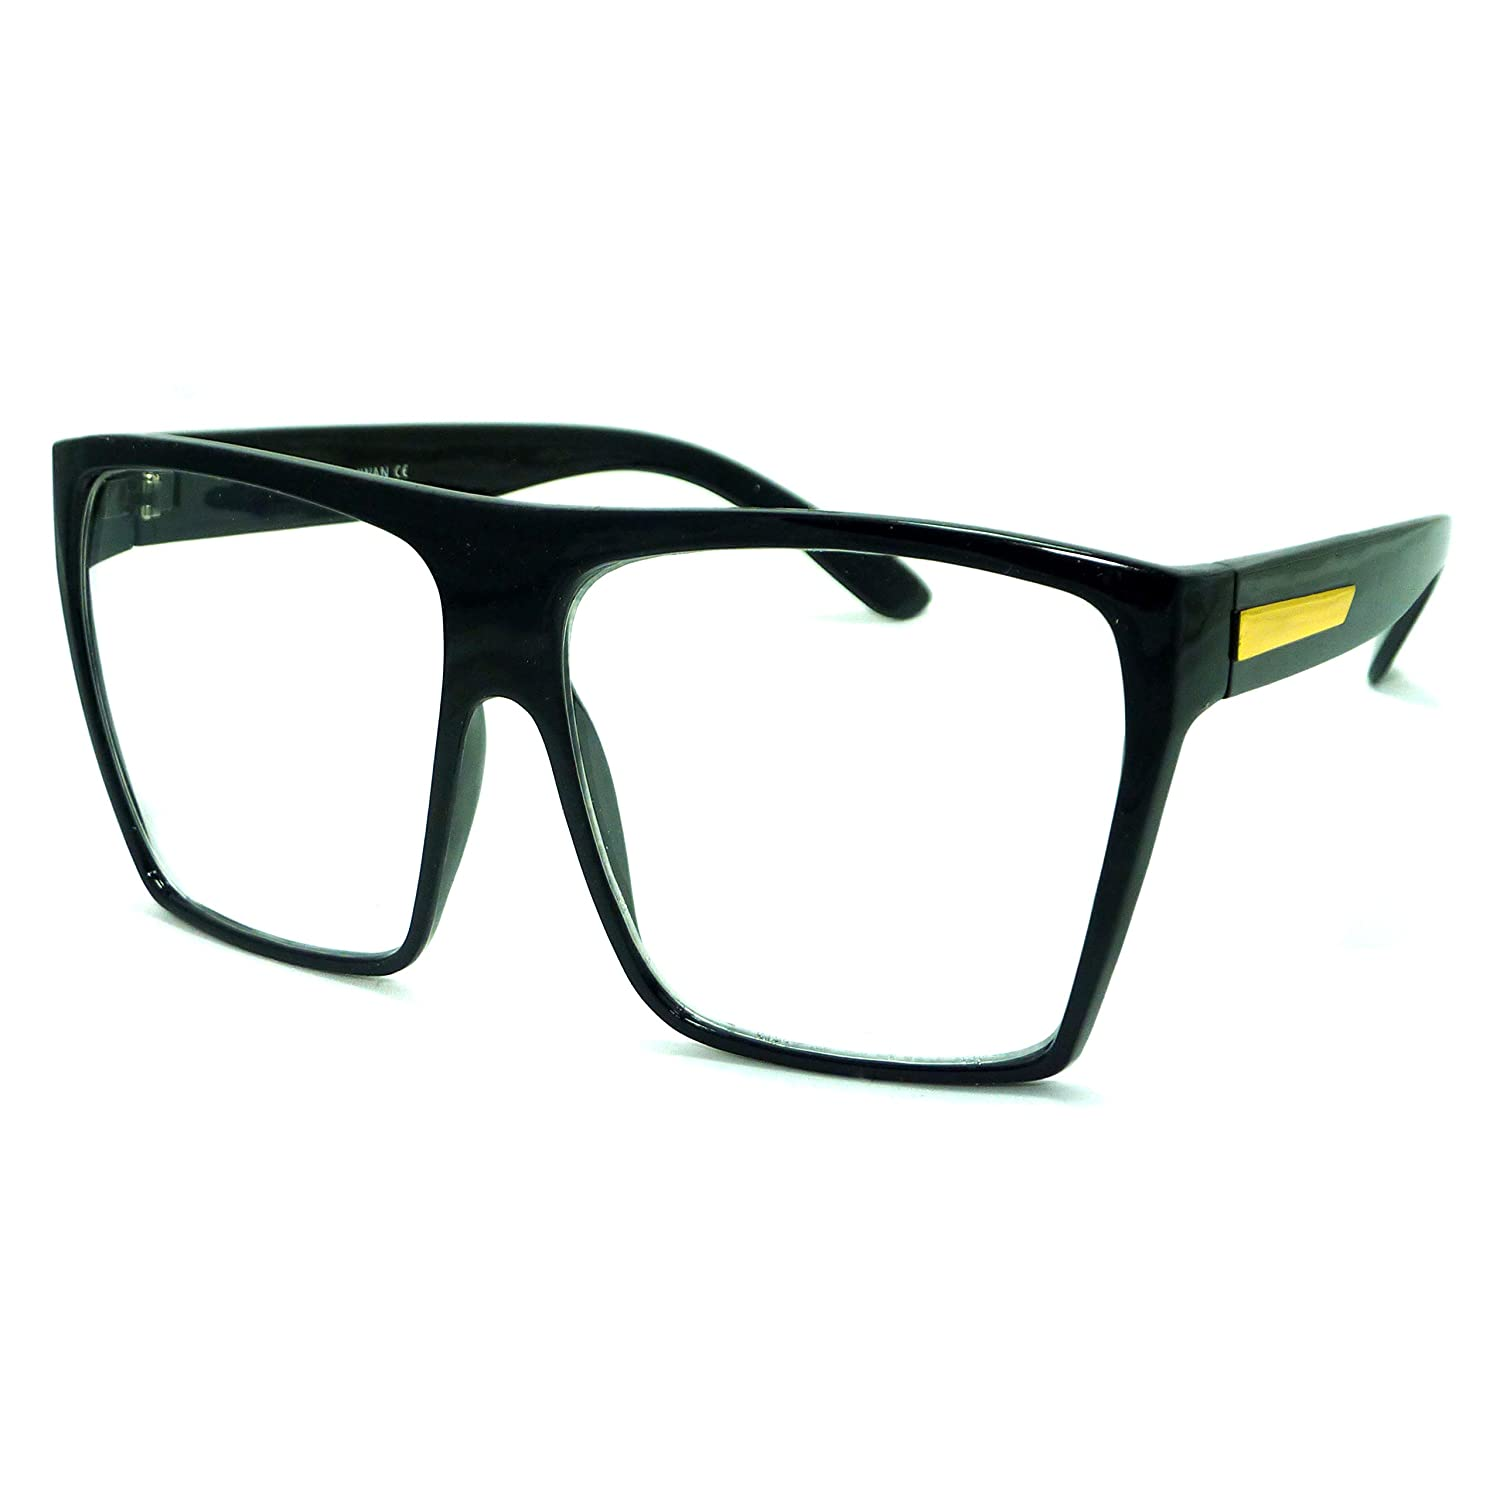 RETRO Super Oversized Square Frame Clear Lens Eye Glasses BLACK/GOLD